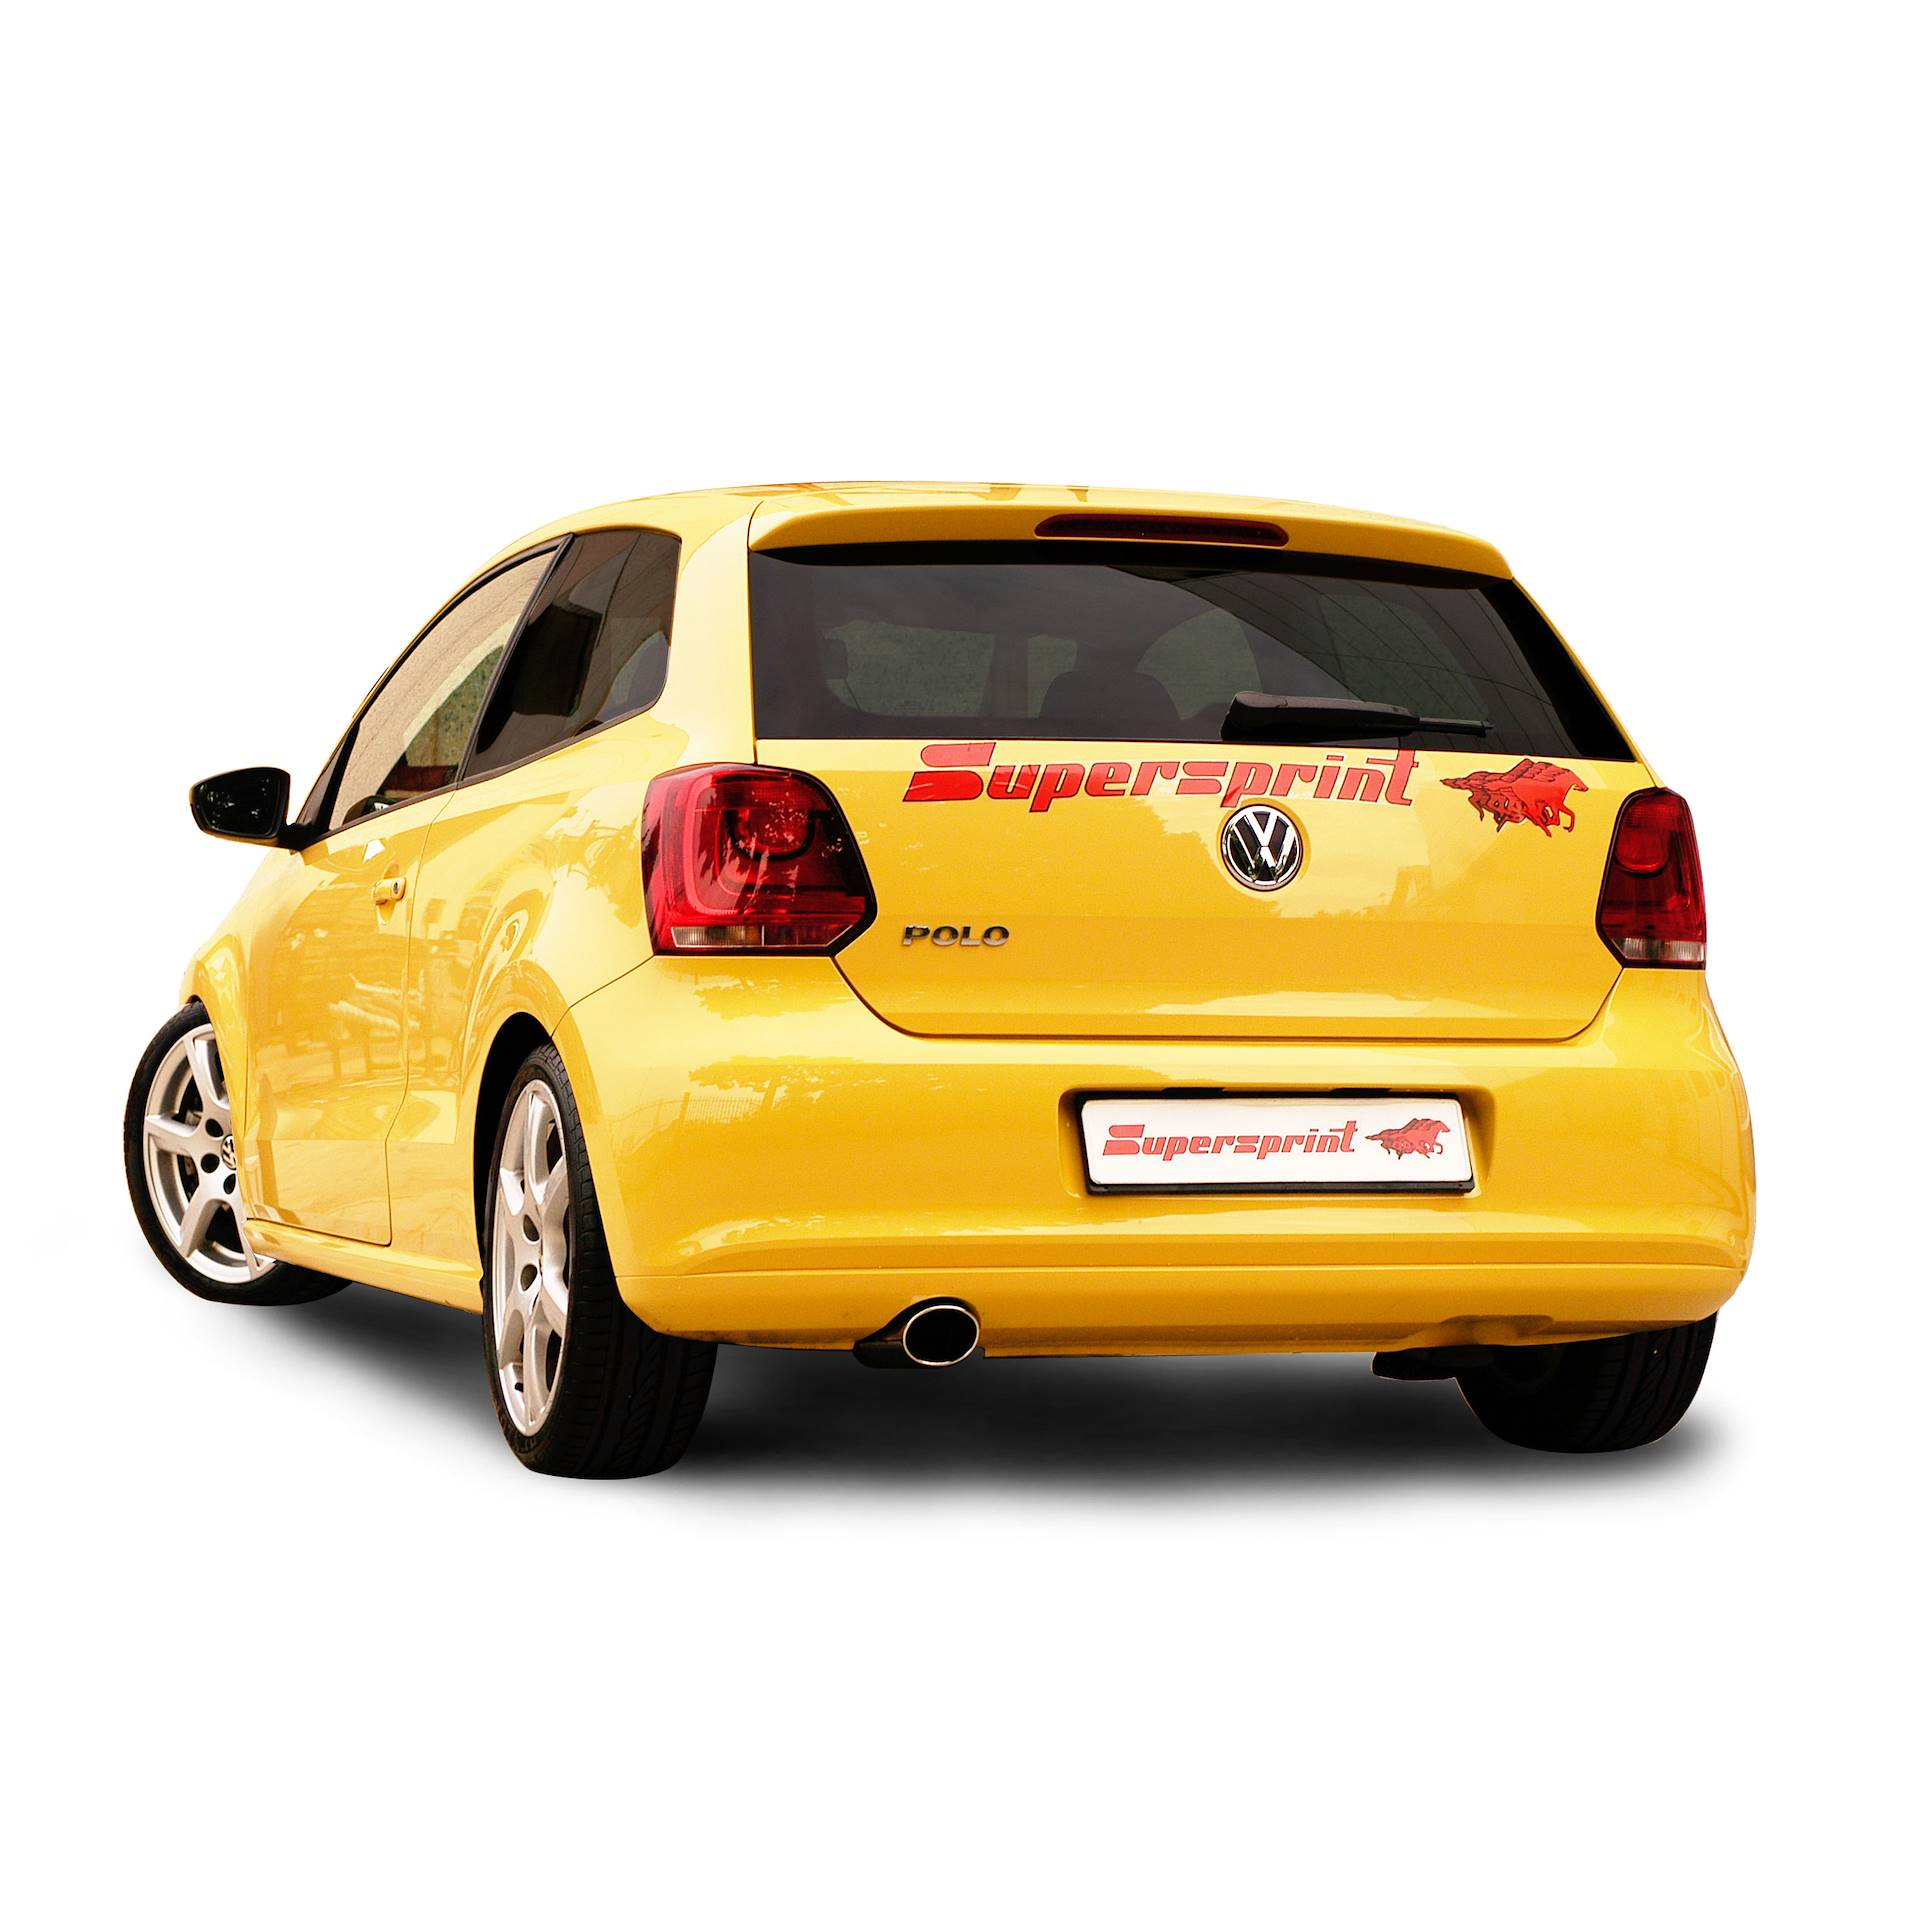 Volkswagen - VW POLO 6R 1.2 TSI 3p./5p. (90-105 PS) 2009 ->